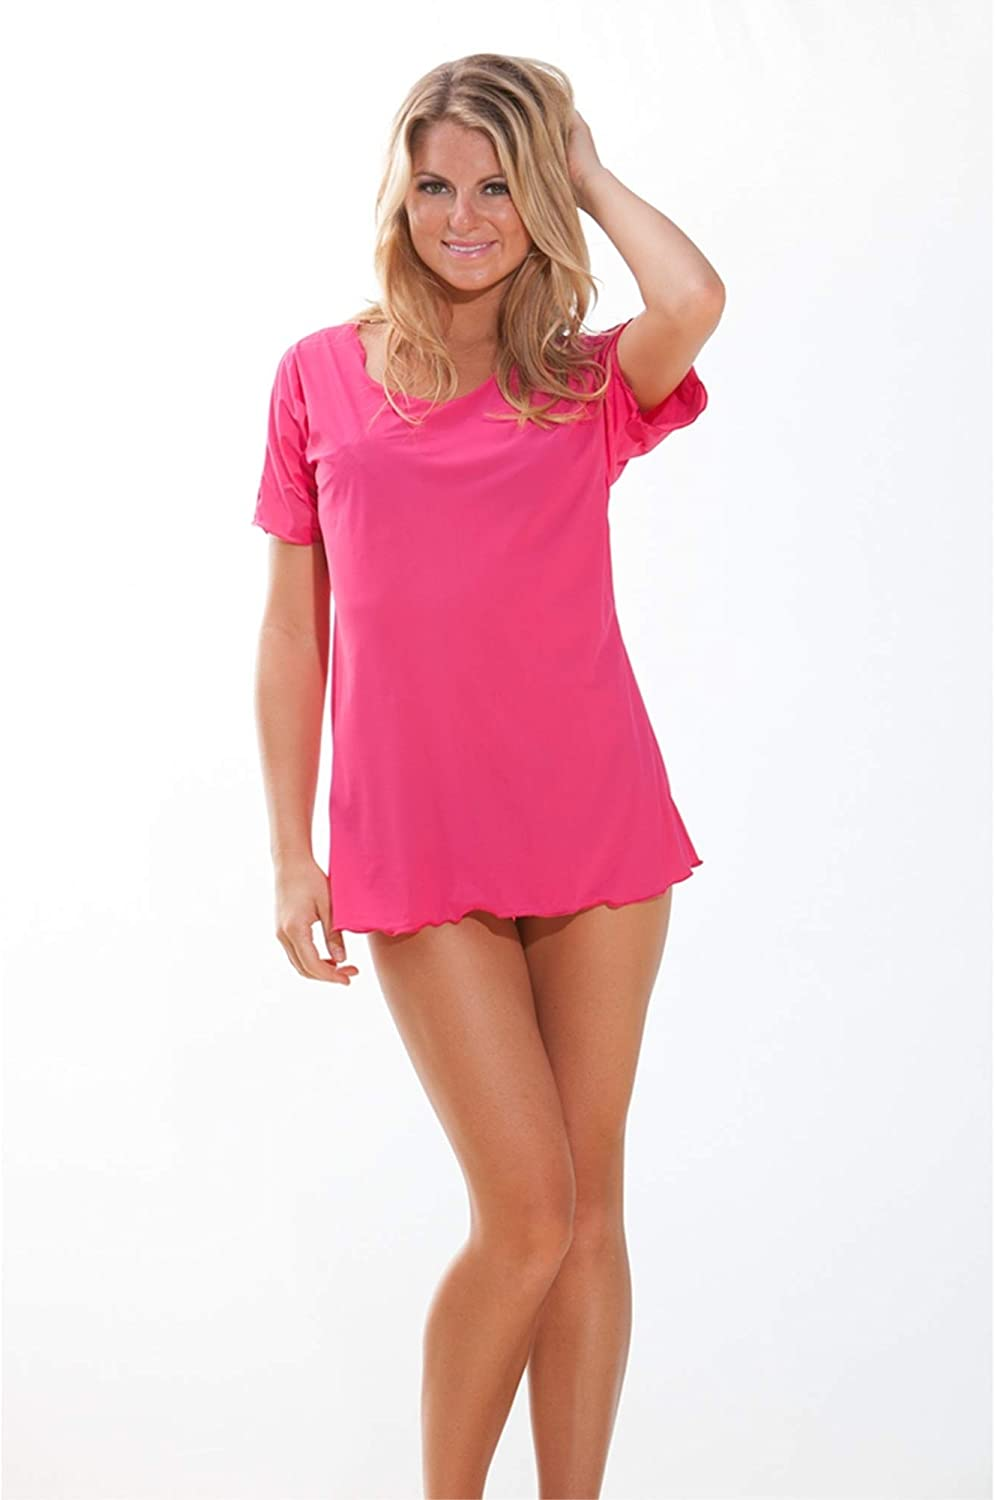 bluee Sky Swimwear Fushia Short Sleeve Cover Up Dress (Cover Up Only) Small Pink